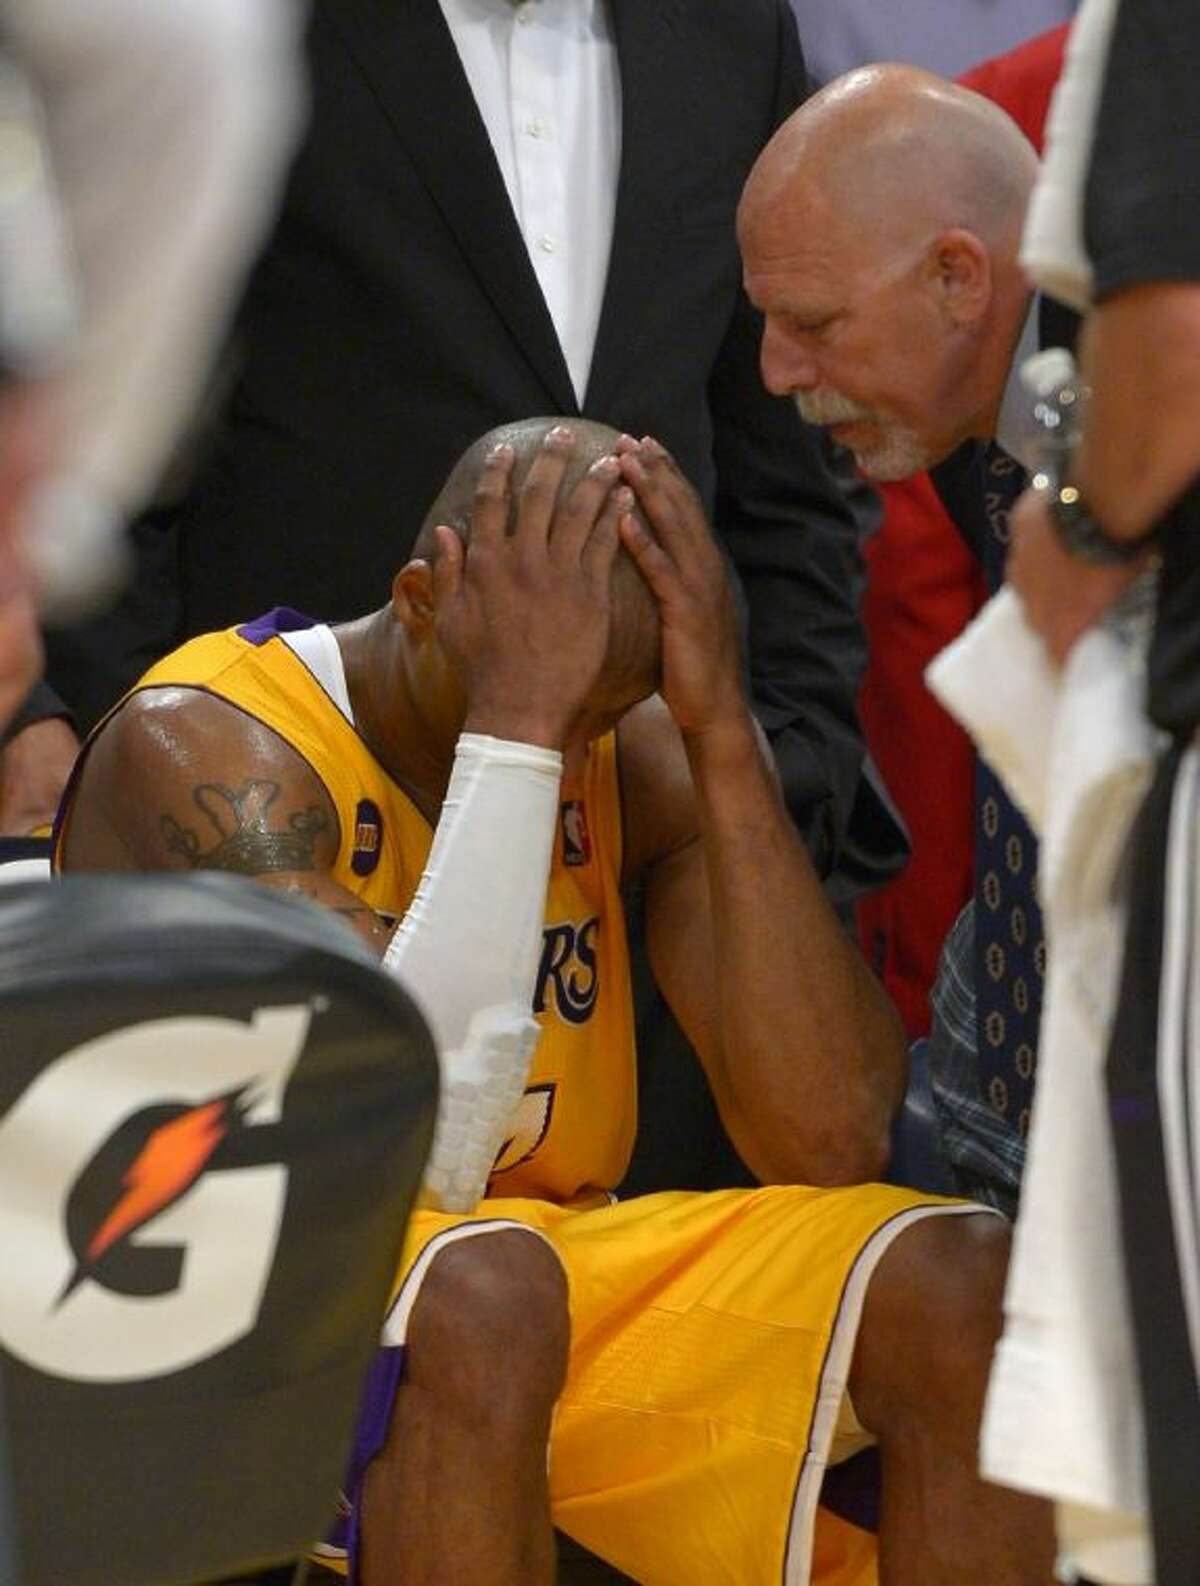 Lakers star Kobe Bryant sustained a torn Achilles tendon in Friday night's game against Golden State. The Lakers won 118-116.